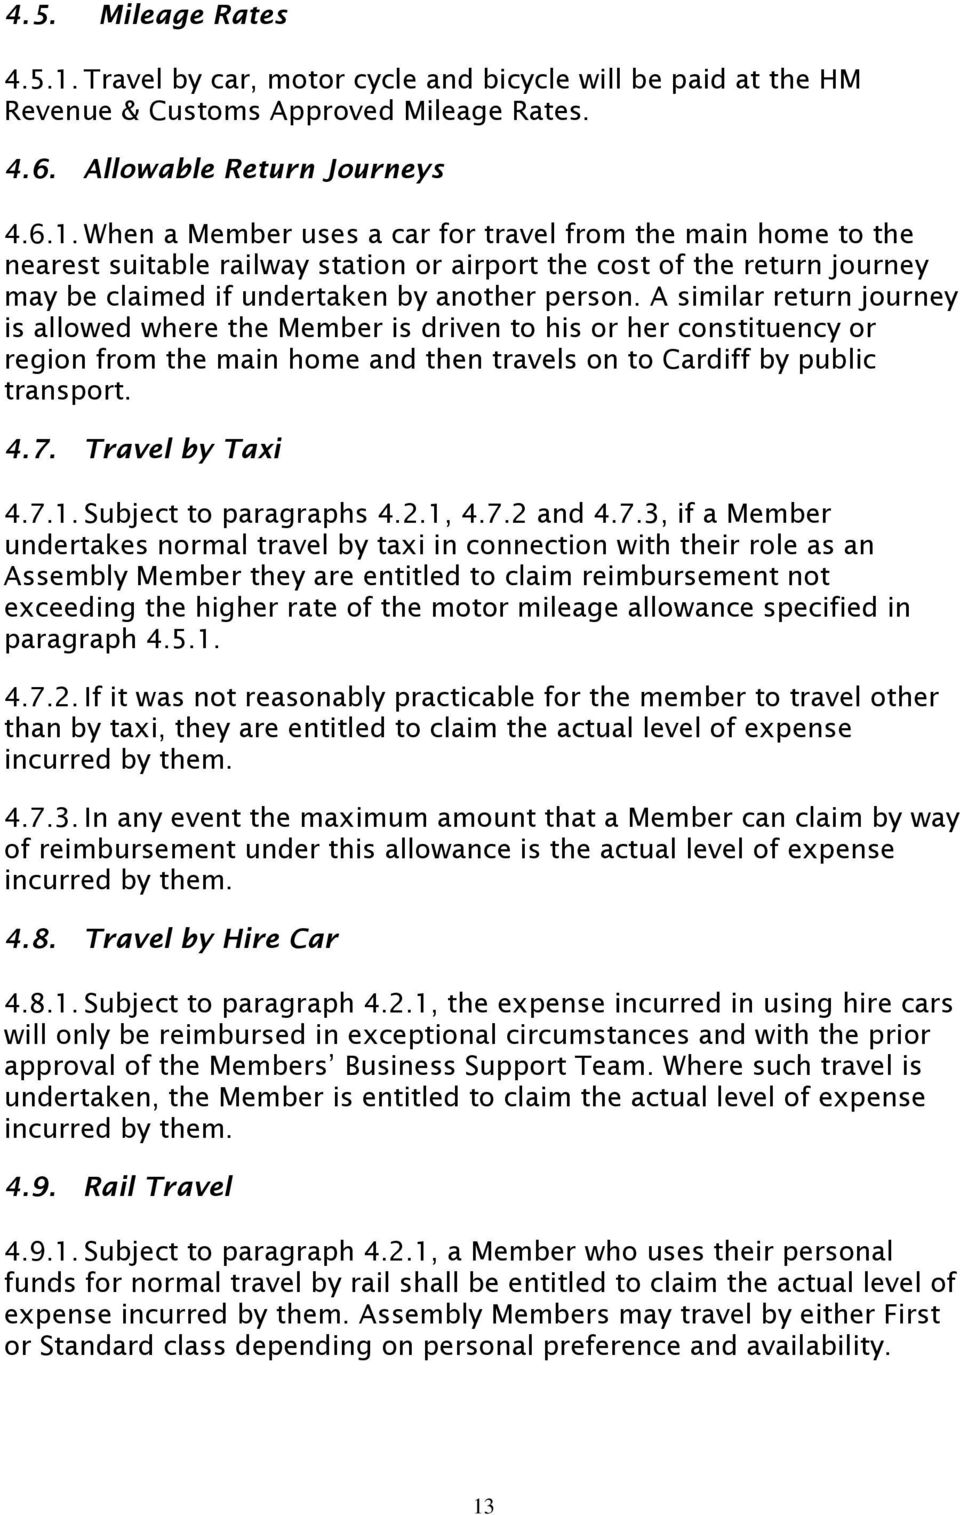 When a Member uses a car for travel from the main home to the nearest suitable railway station or airport the cost of the return journey may be claimed if undertaken by another person.